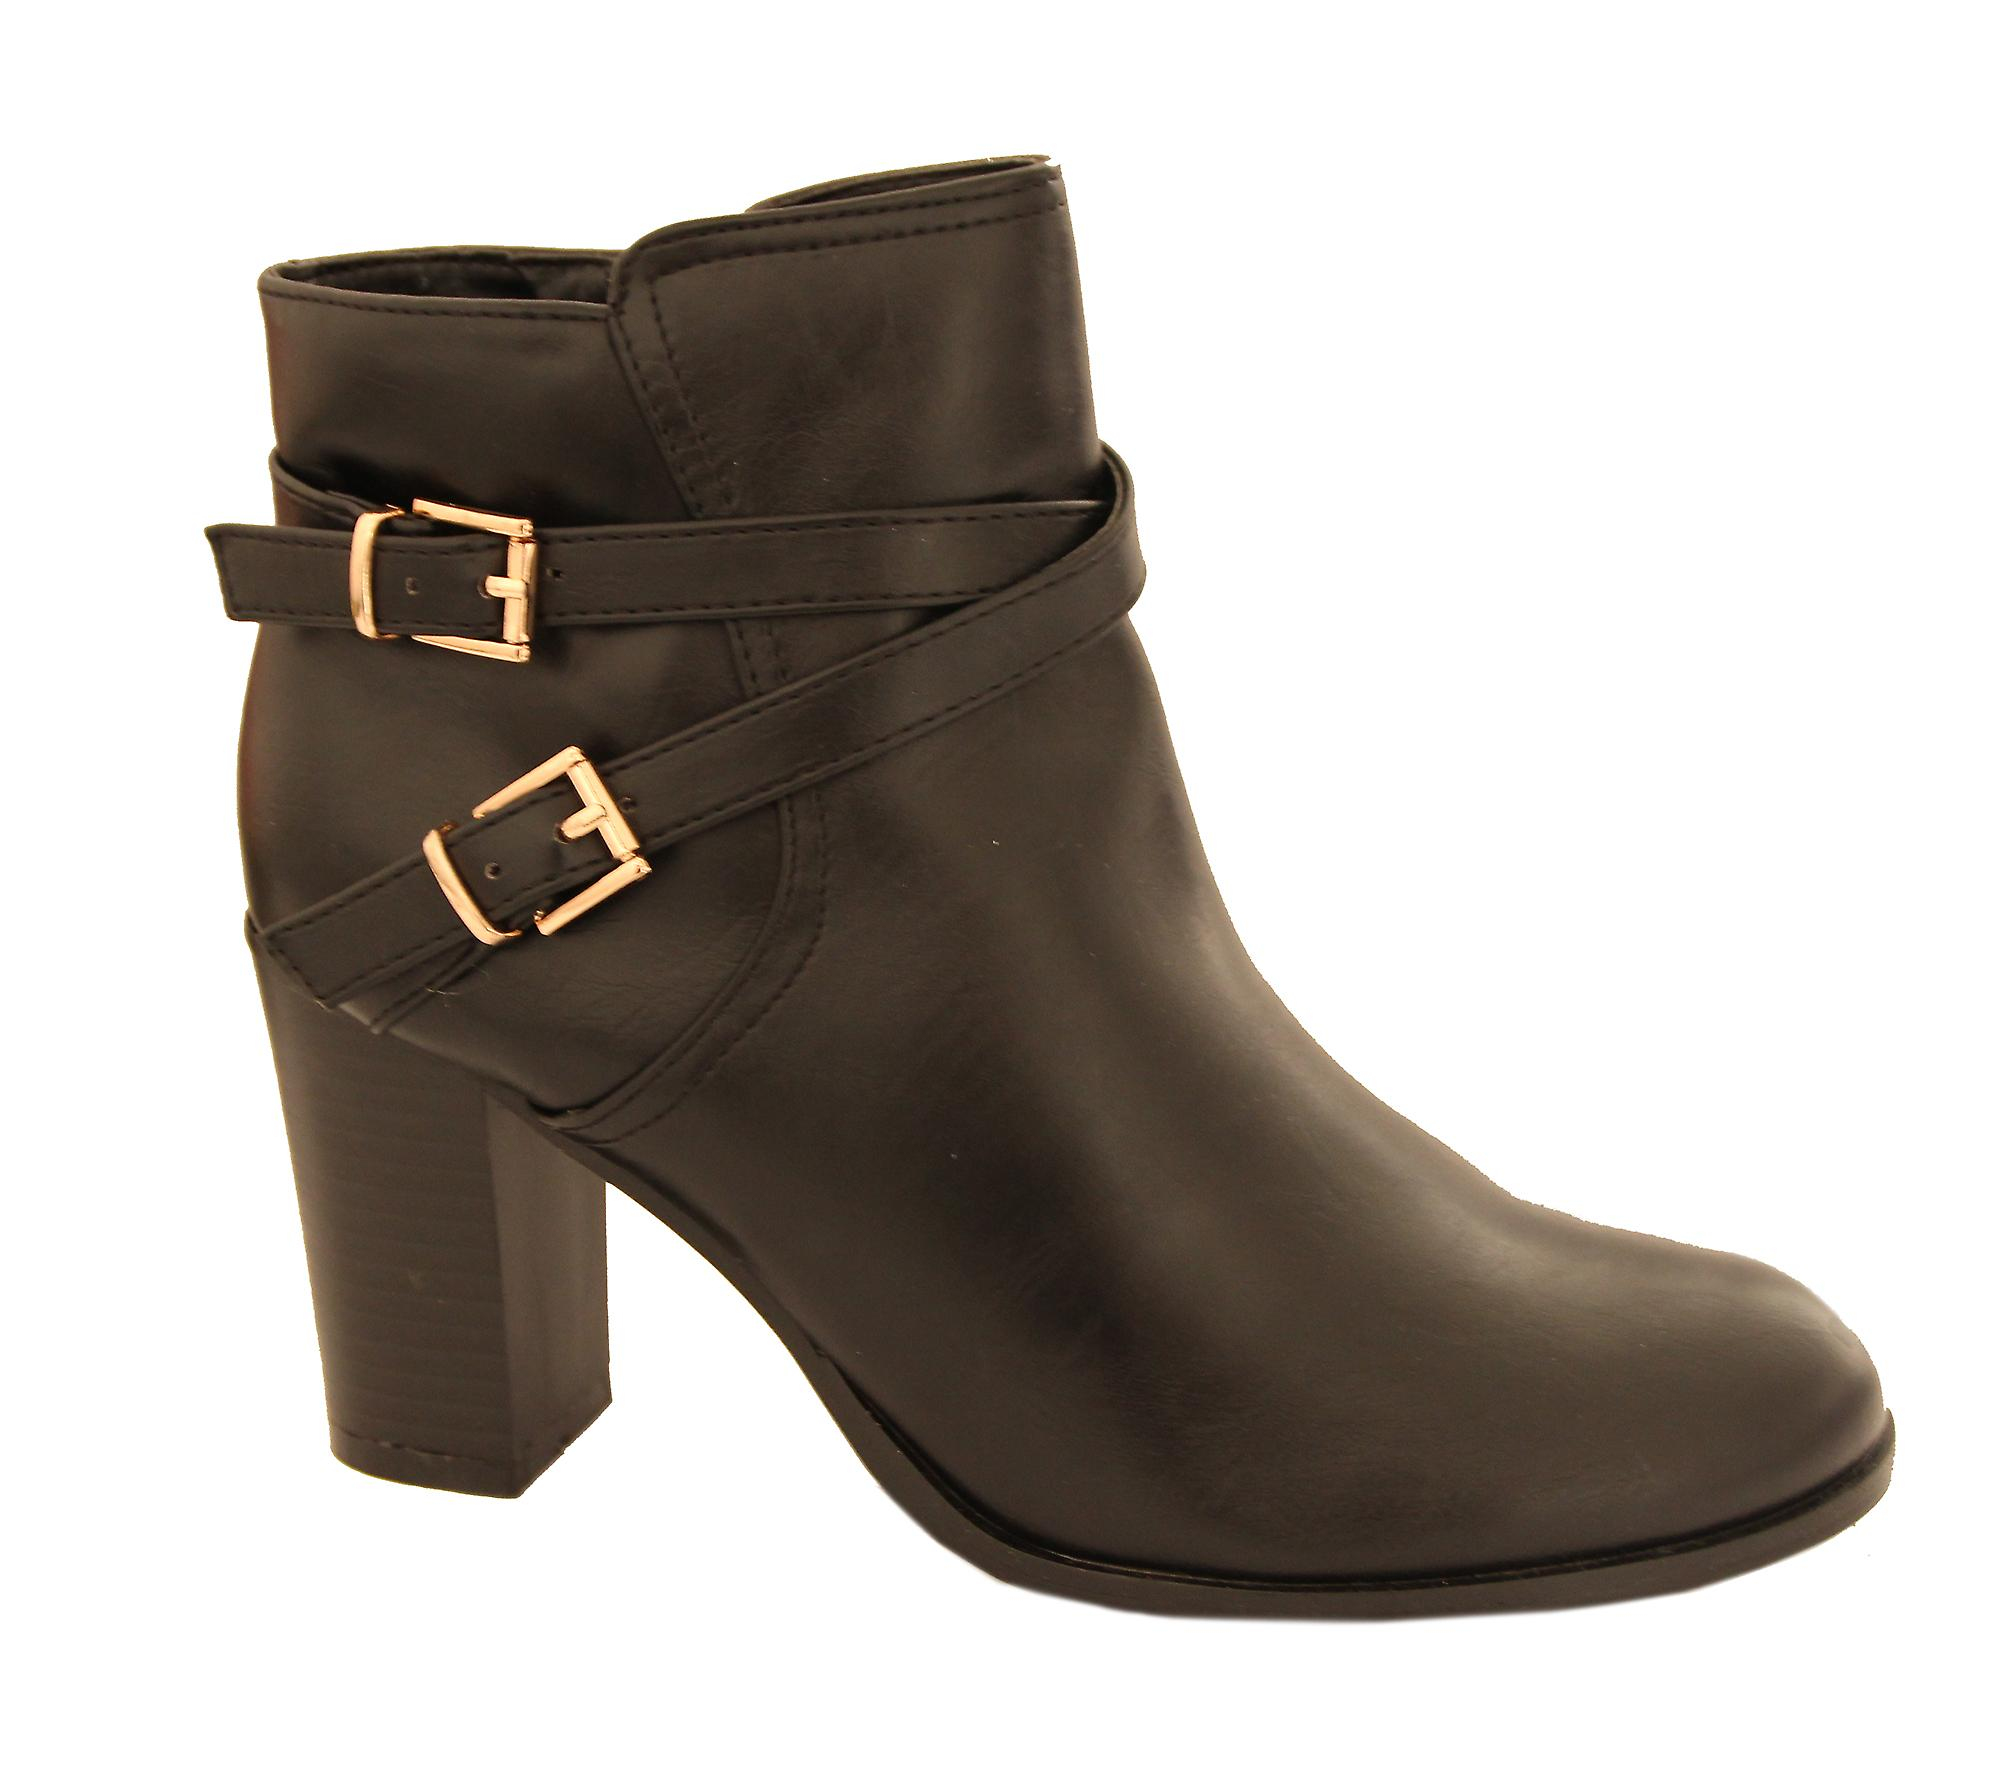 Waooh - High ankle boot strap golden Hashly